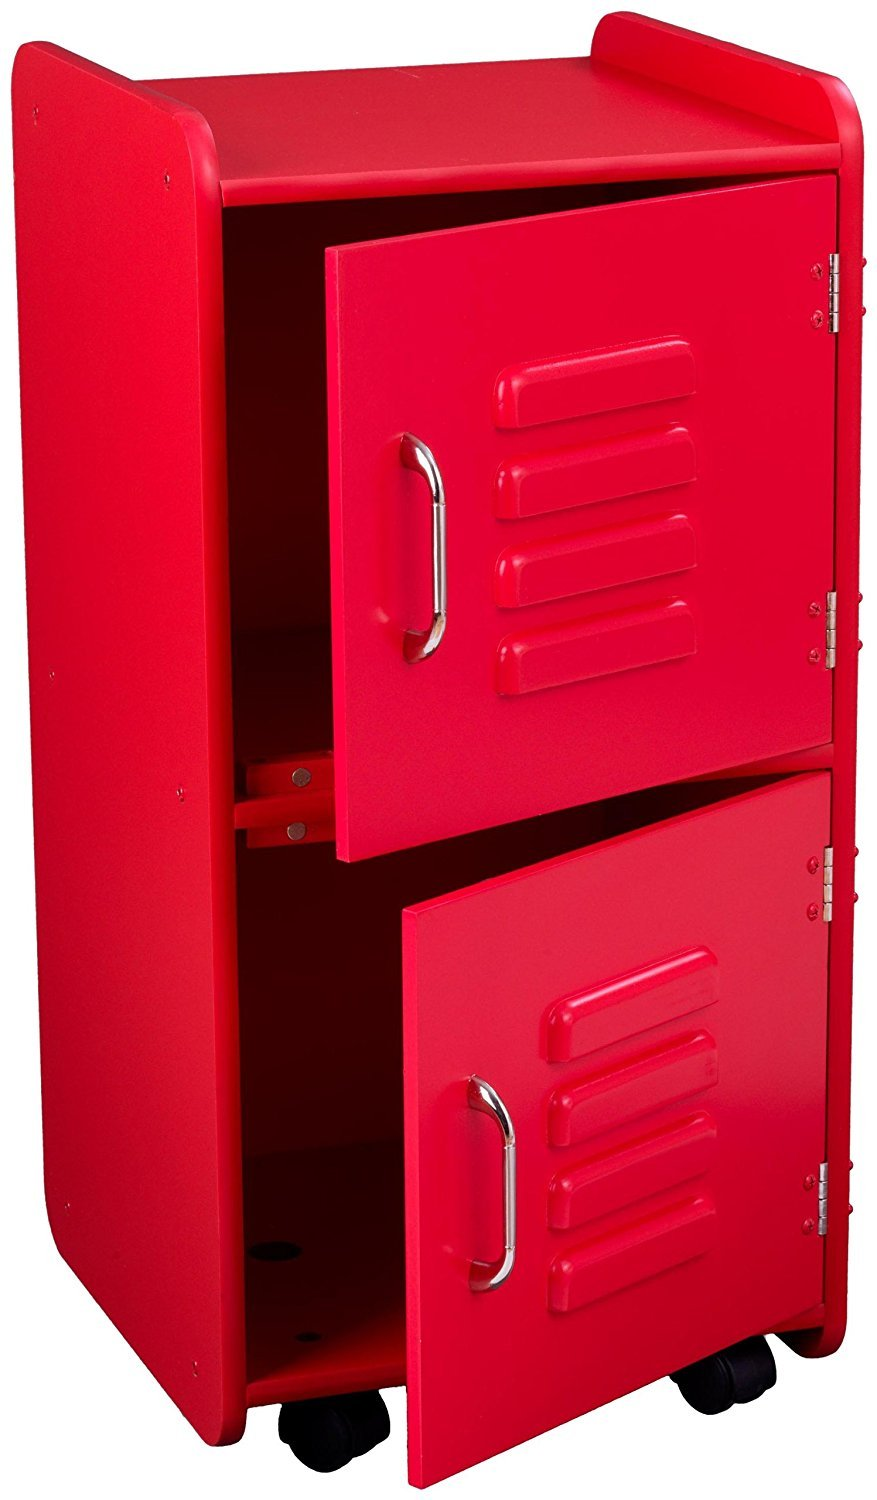 Locker Style Storage Home Furniture Design